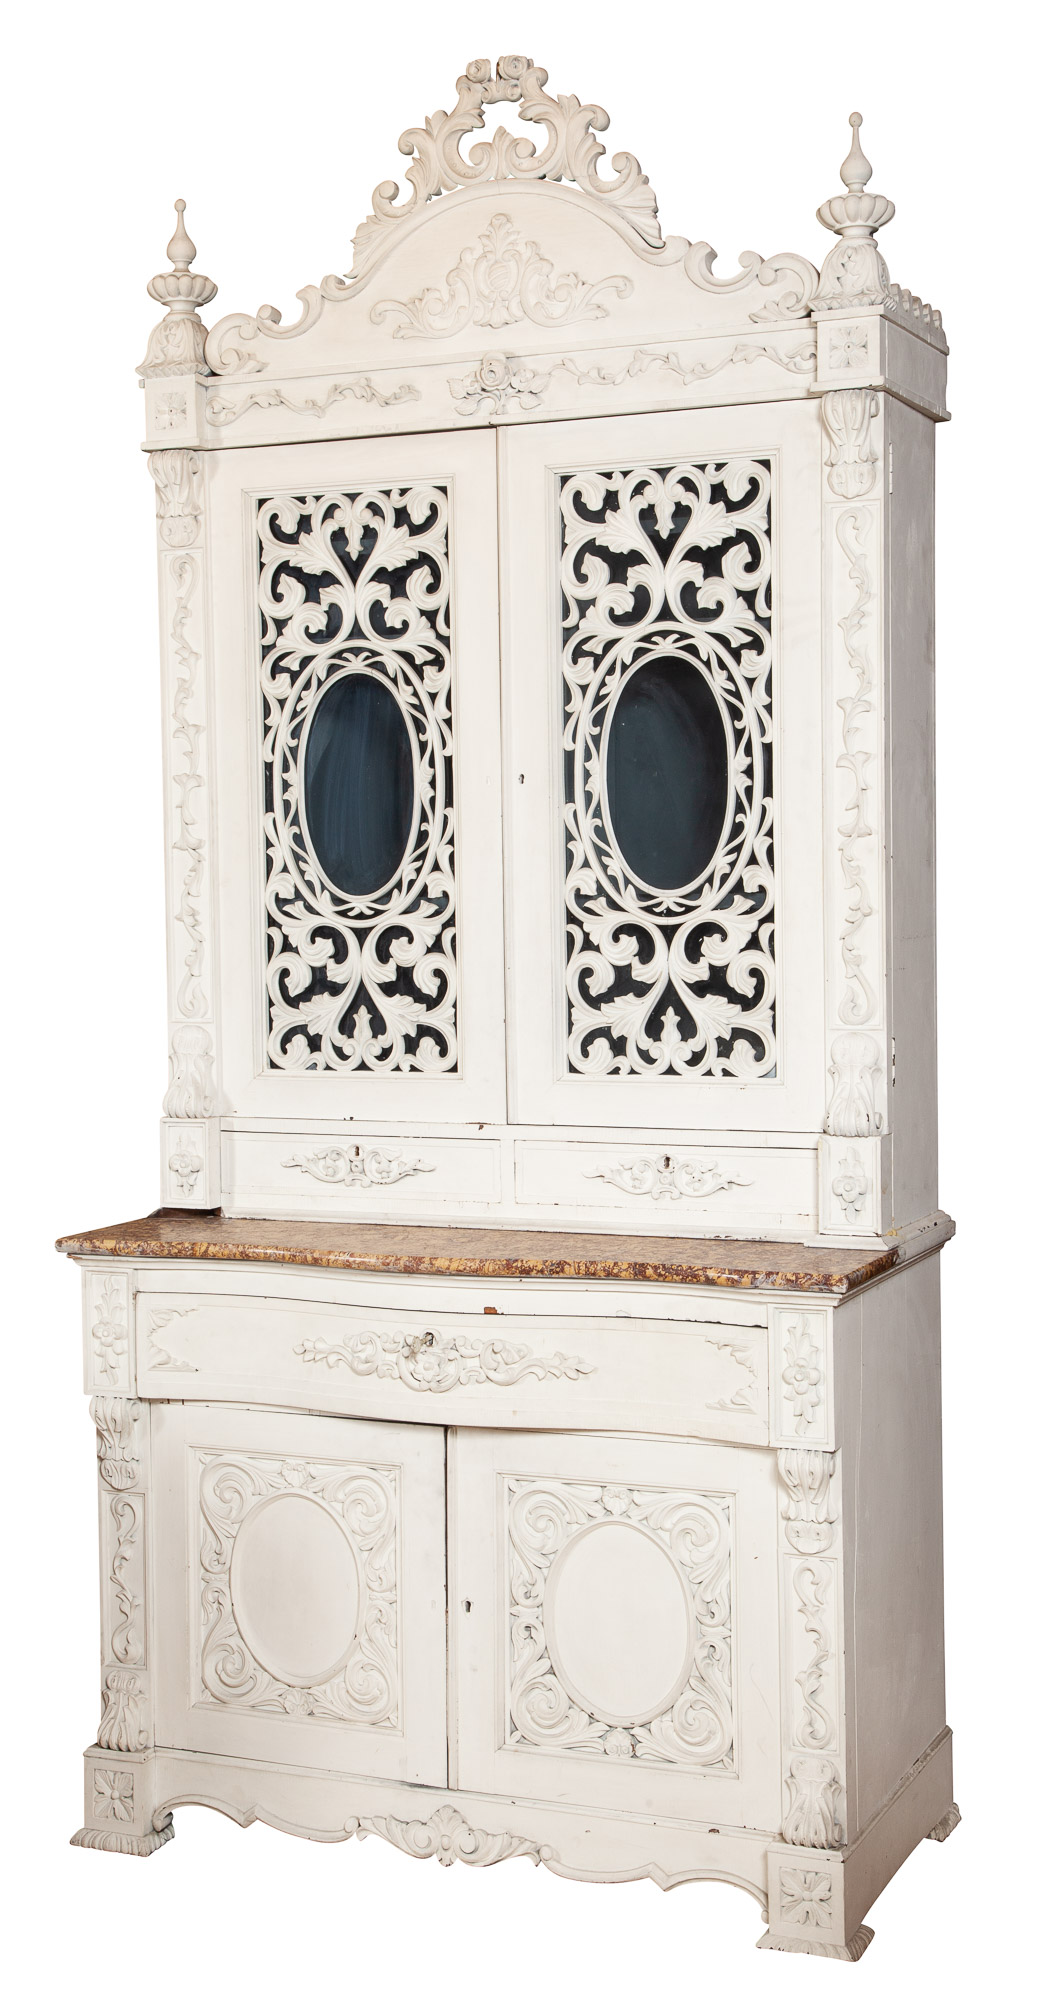 Lot image - Rococo Revival White-Painted and Marble Bookcase/Secretaire Cabinet